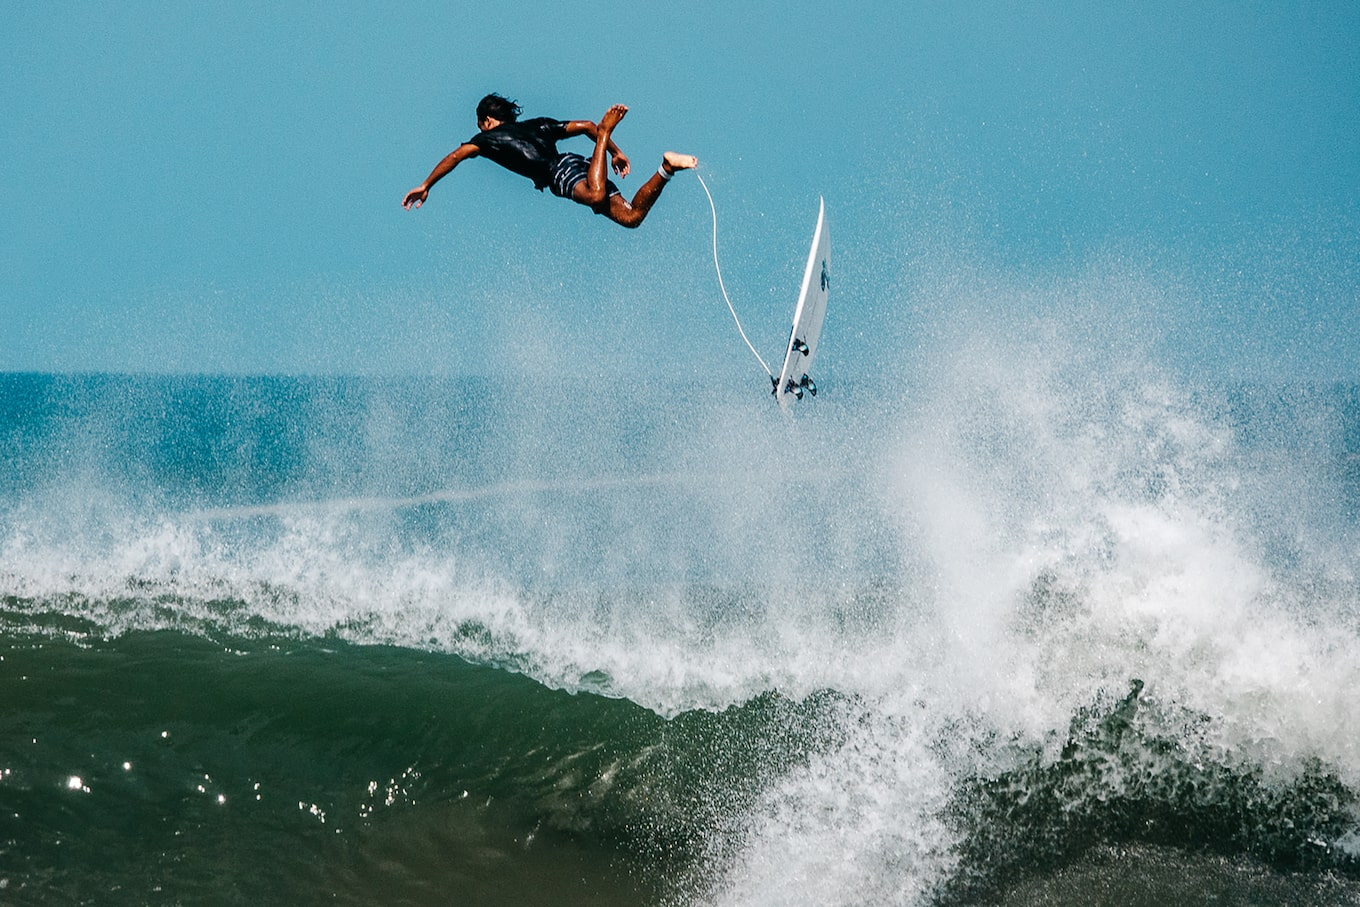 Danas-Macijauskas-sony-RX10M4-surfer-leaping-in-tall-wave-attached-to-surfboard